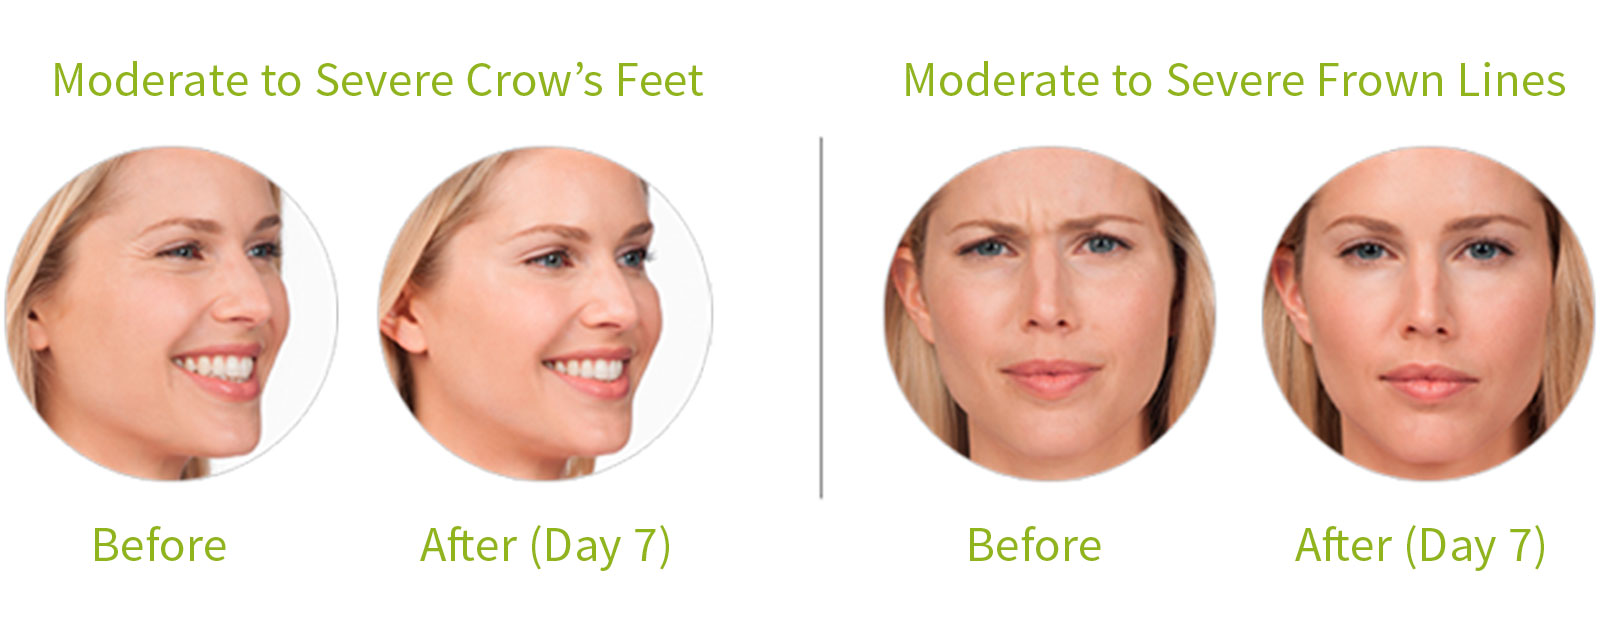 botox southern oregon, botox ashland oregon